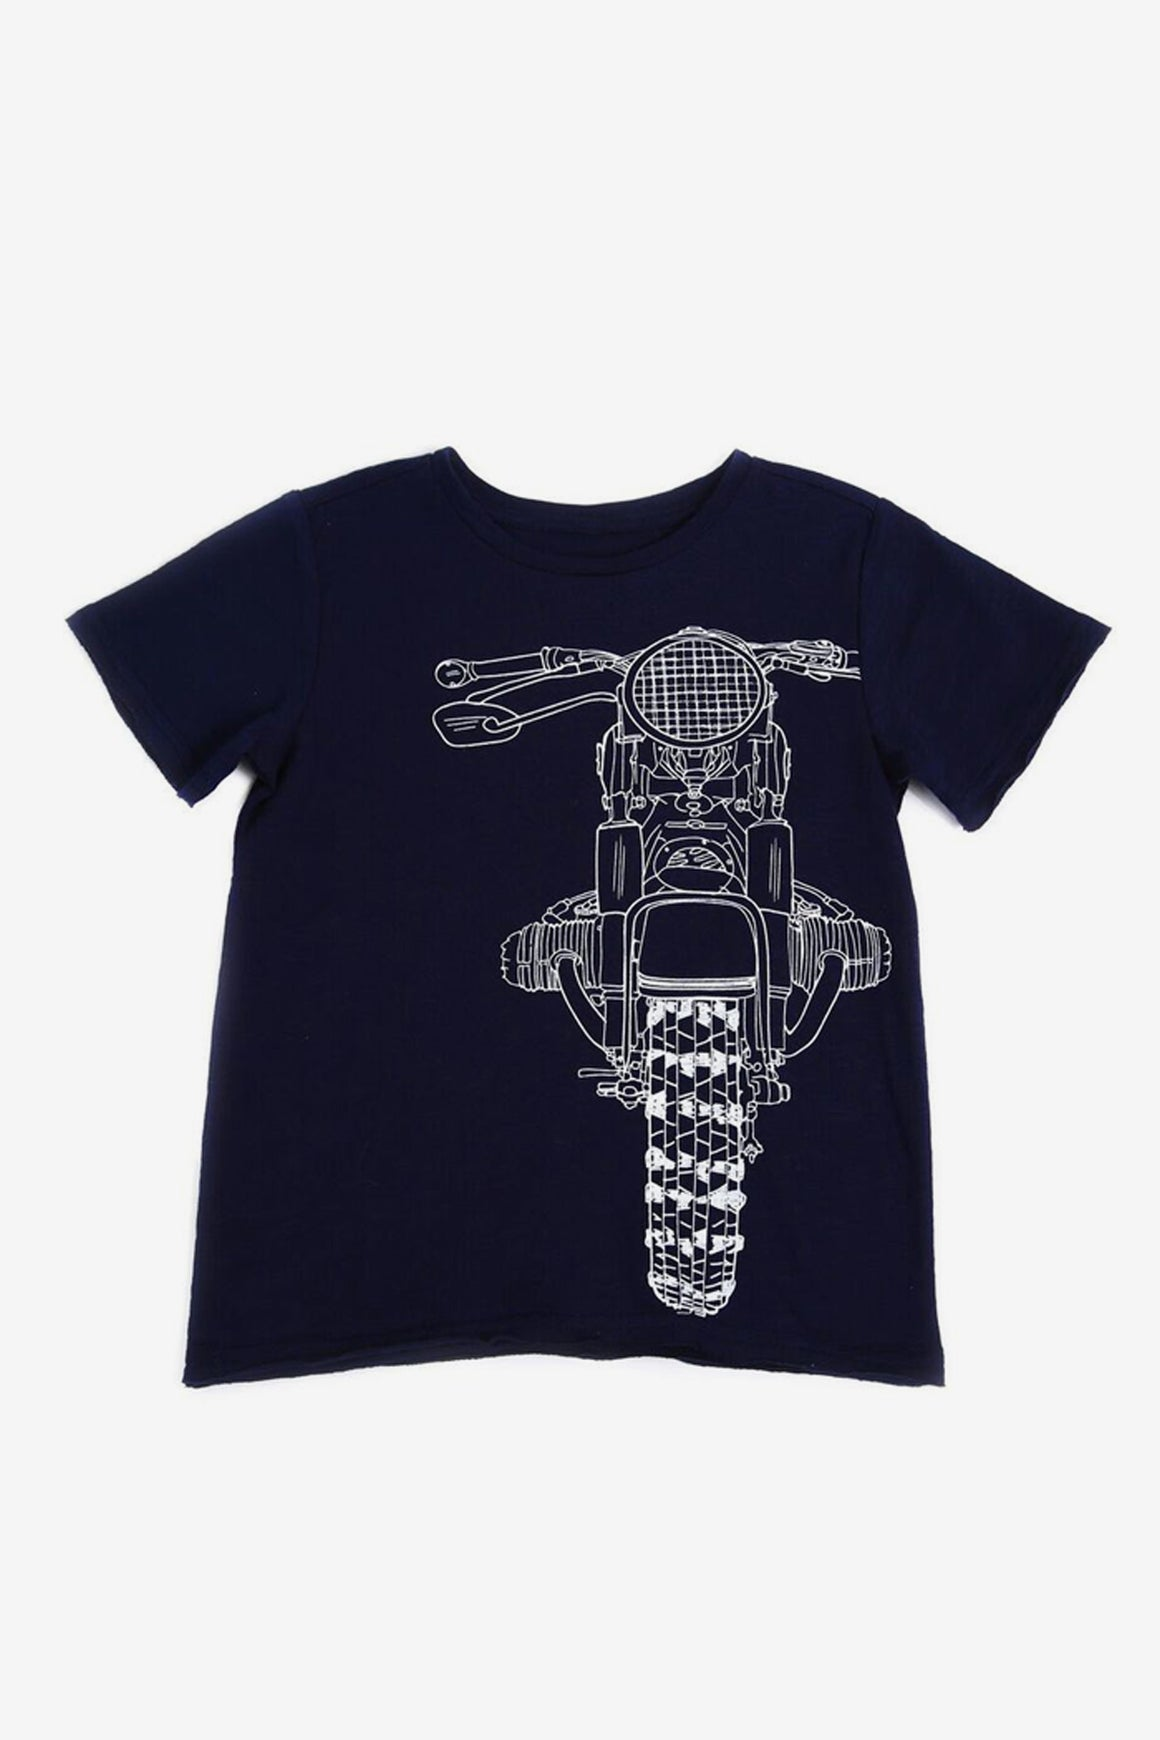 EGG Baby Damian Graphic Tee